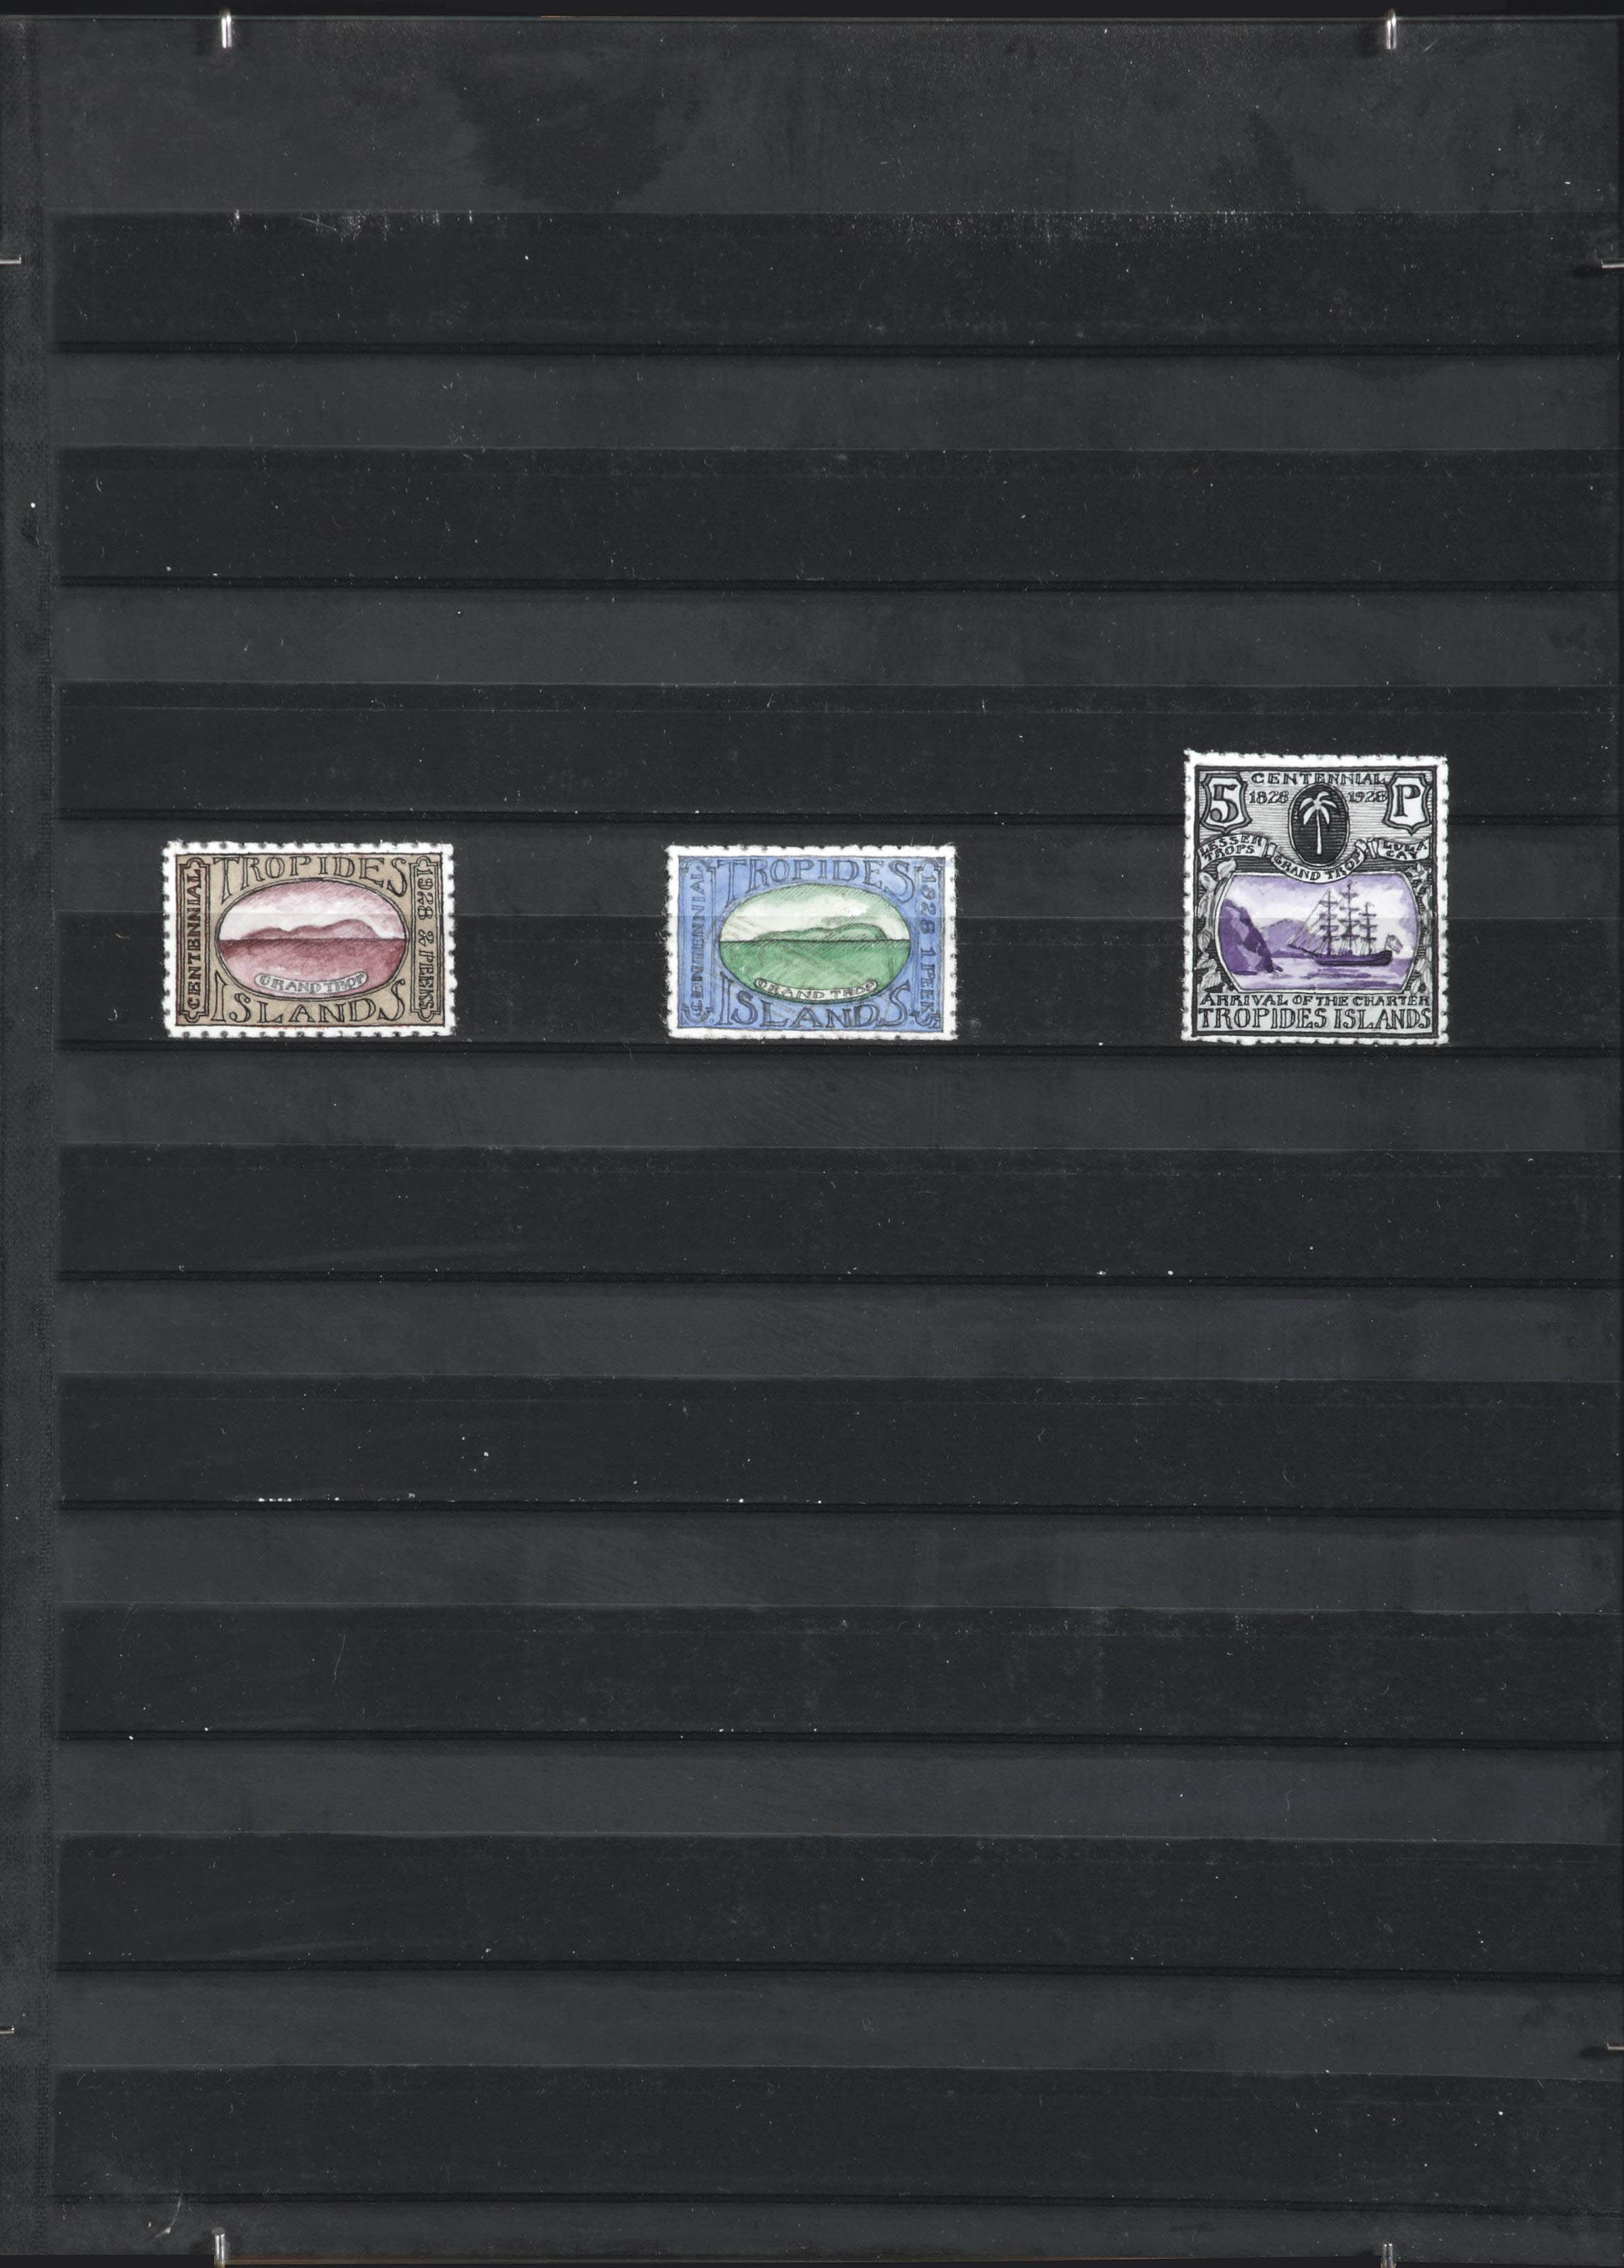 TROPIDES ISLANDS - A SERIES OF THREE STAMPS